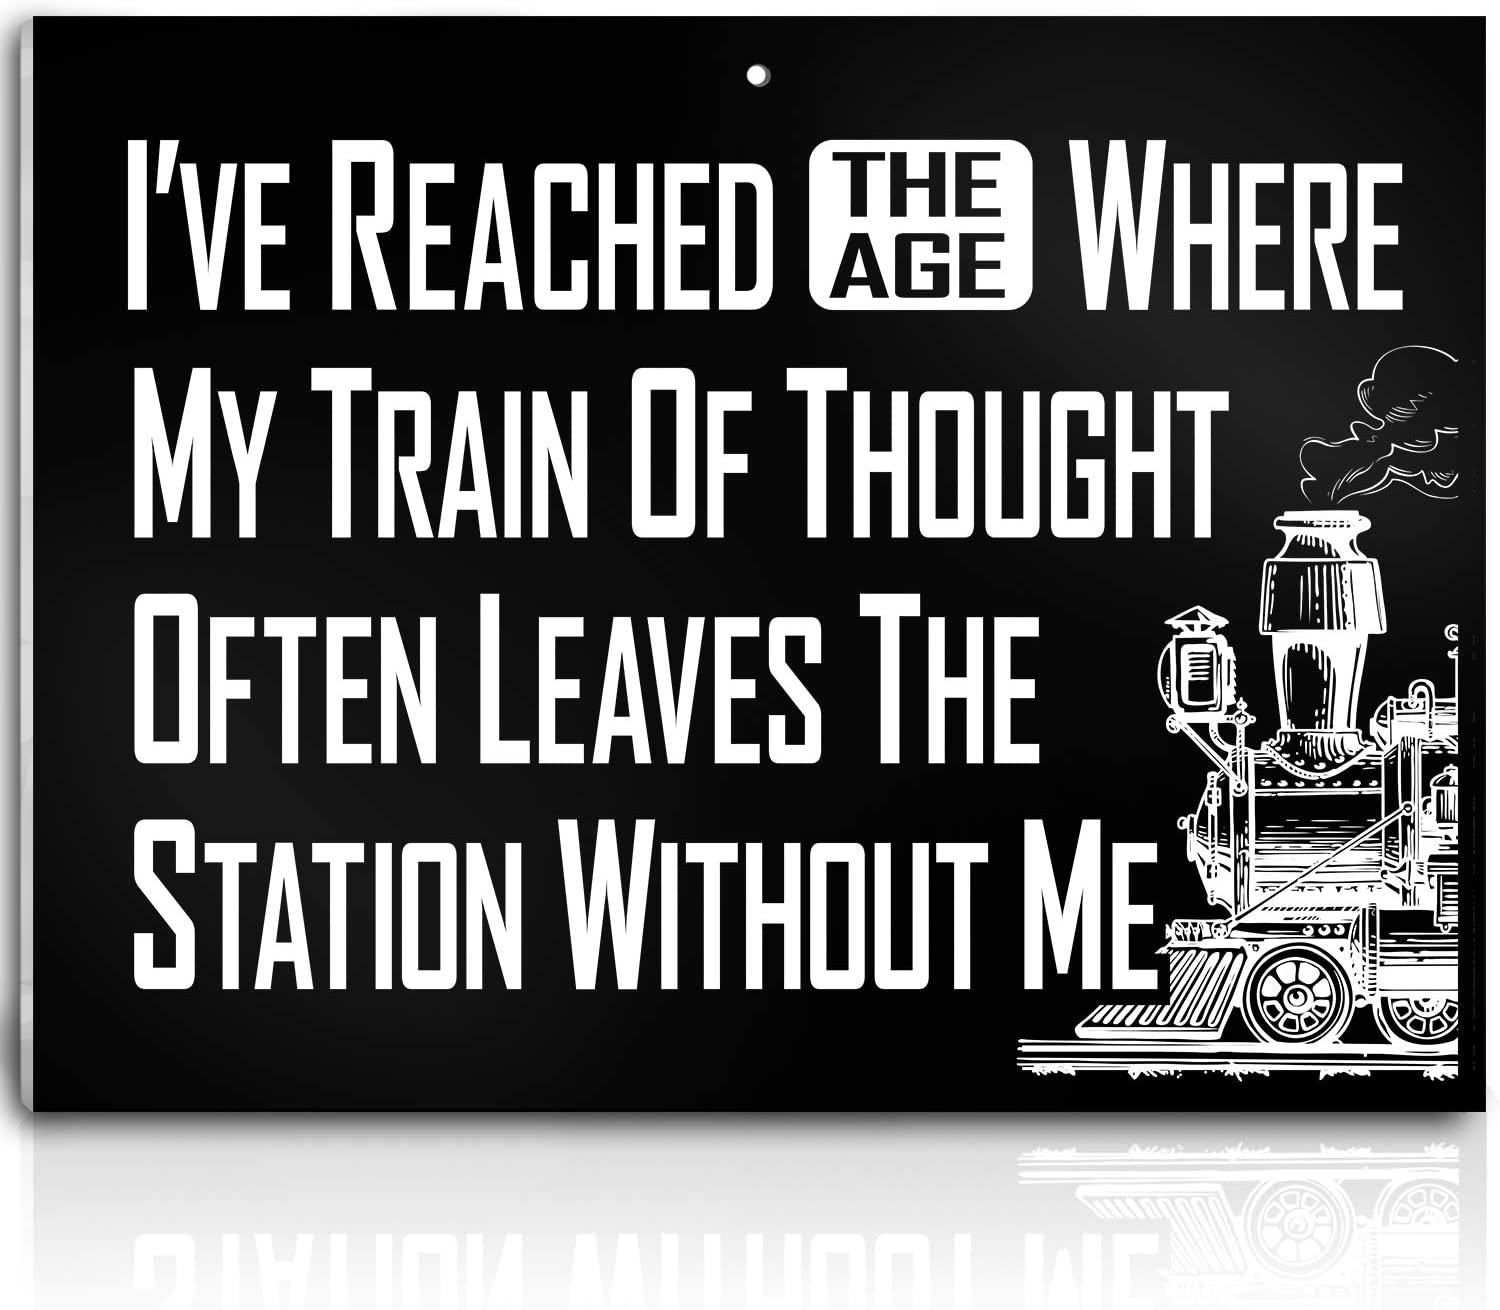 Bigtime Signs Sanity Train Sign – My Train of Thought Leaves The Station Without Me Decor – PVC Plaque with Funny Saying - Wall, Kitchen, Home, Room Bedroom Decoration - 8x10 Inch (Train)